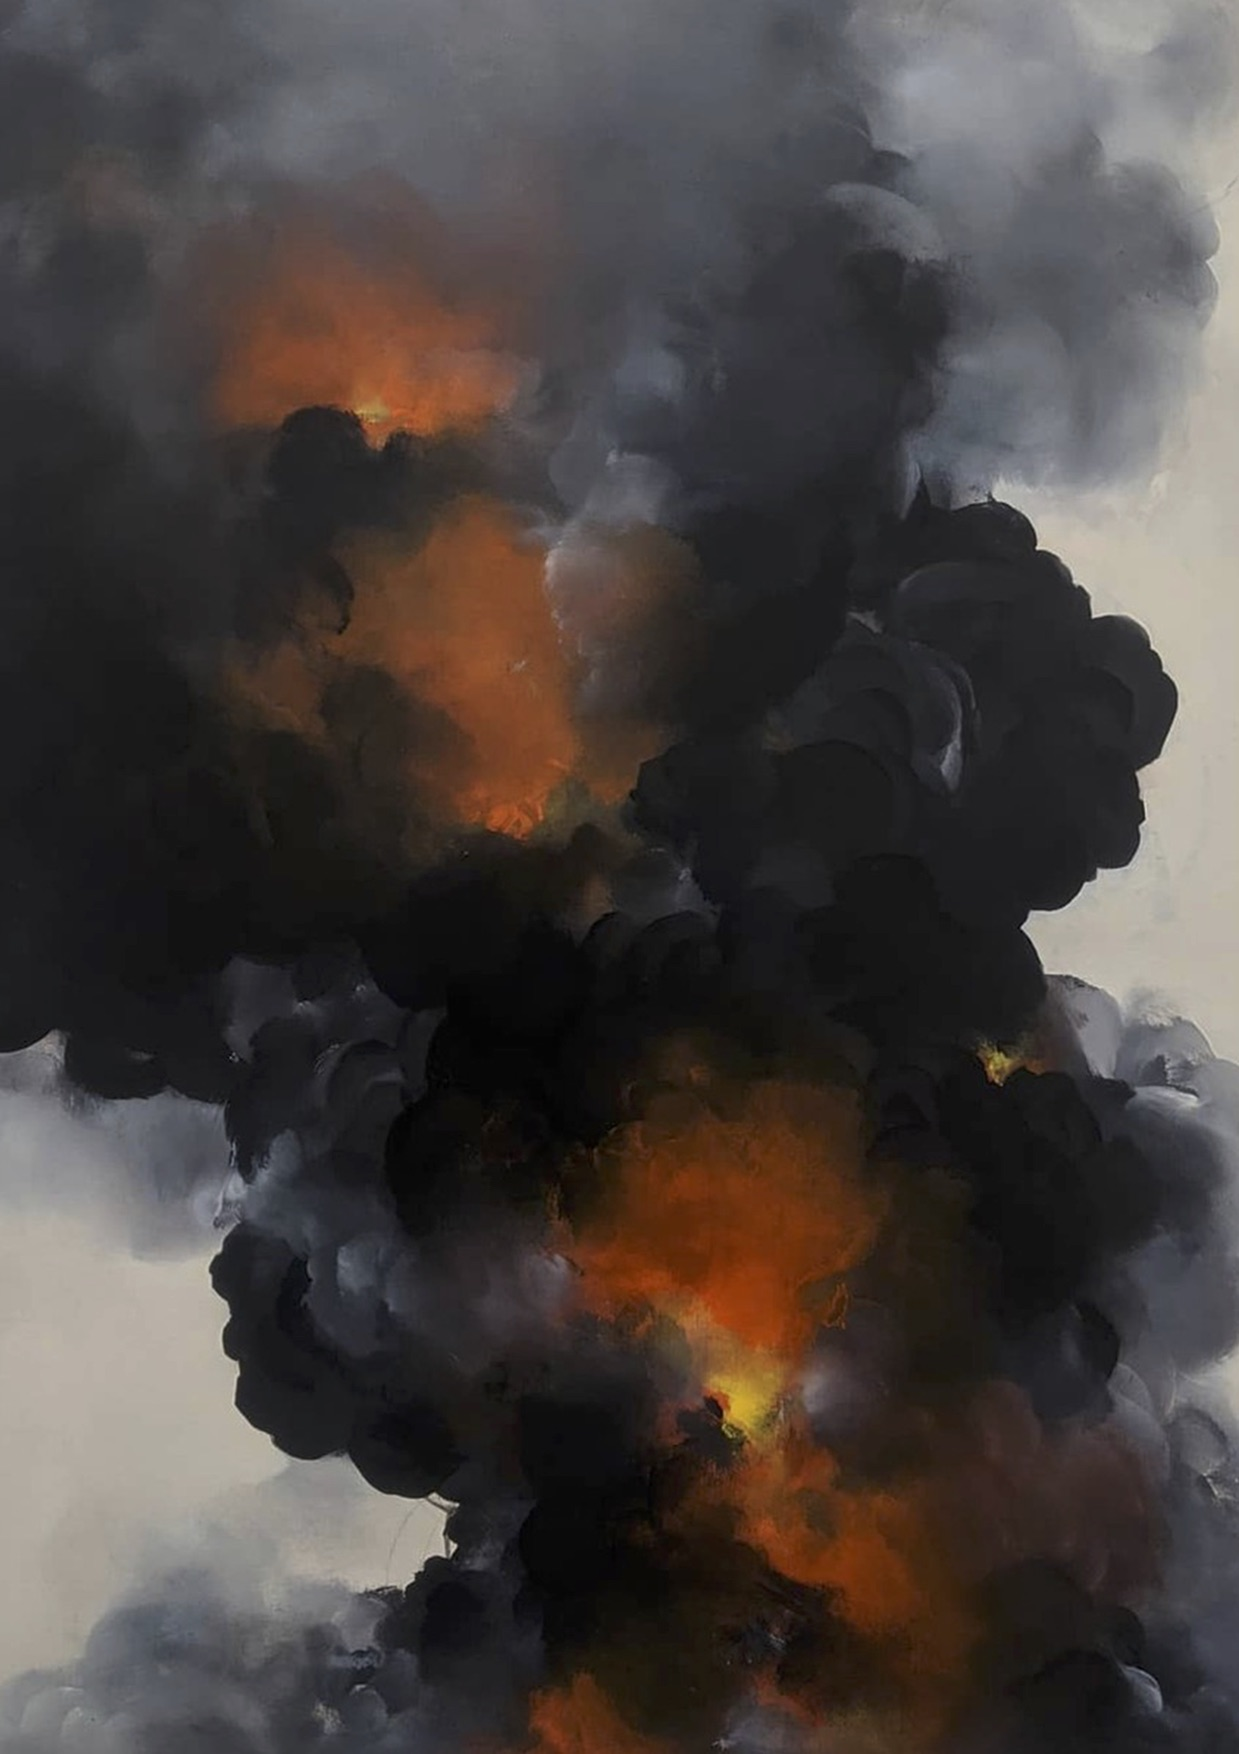 Renowned local and international artists use charcoal from bushfires in new 'RISE' exhibition to support affected communities